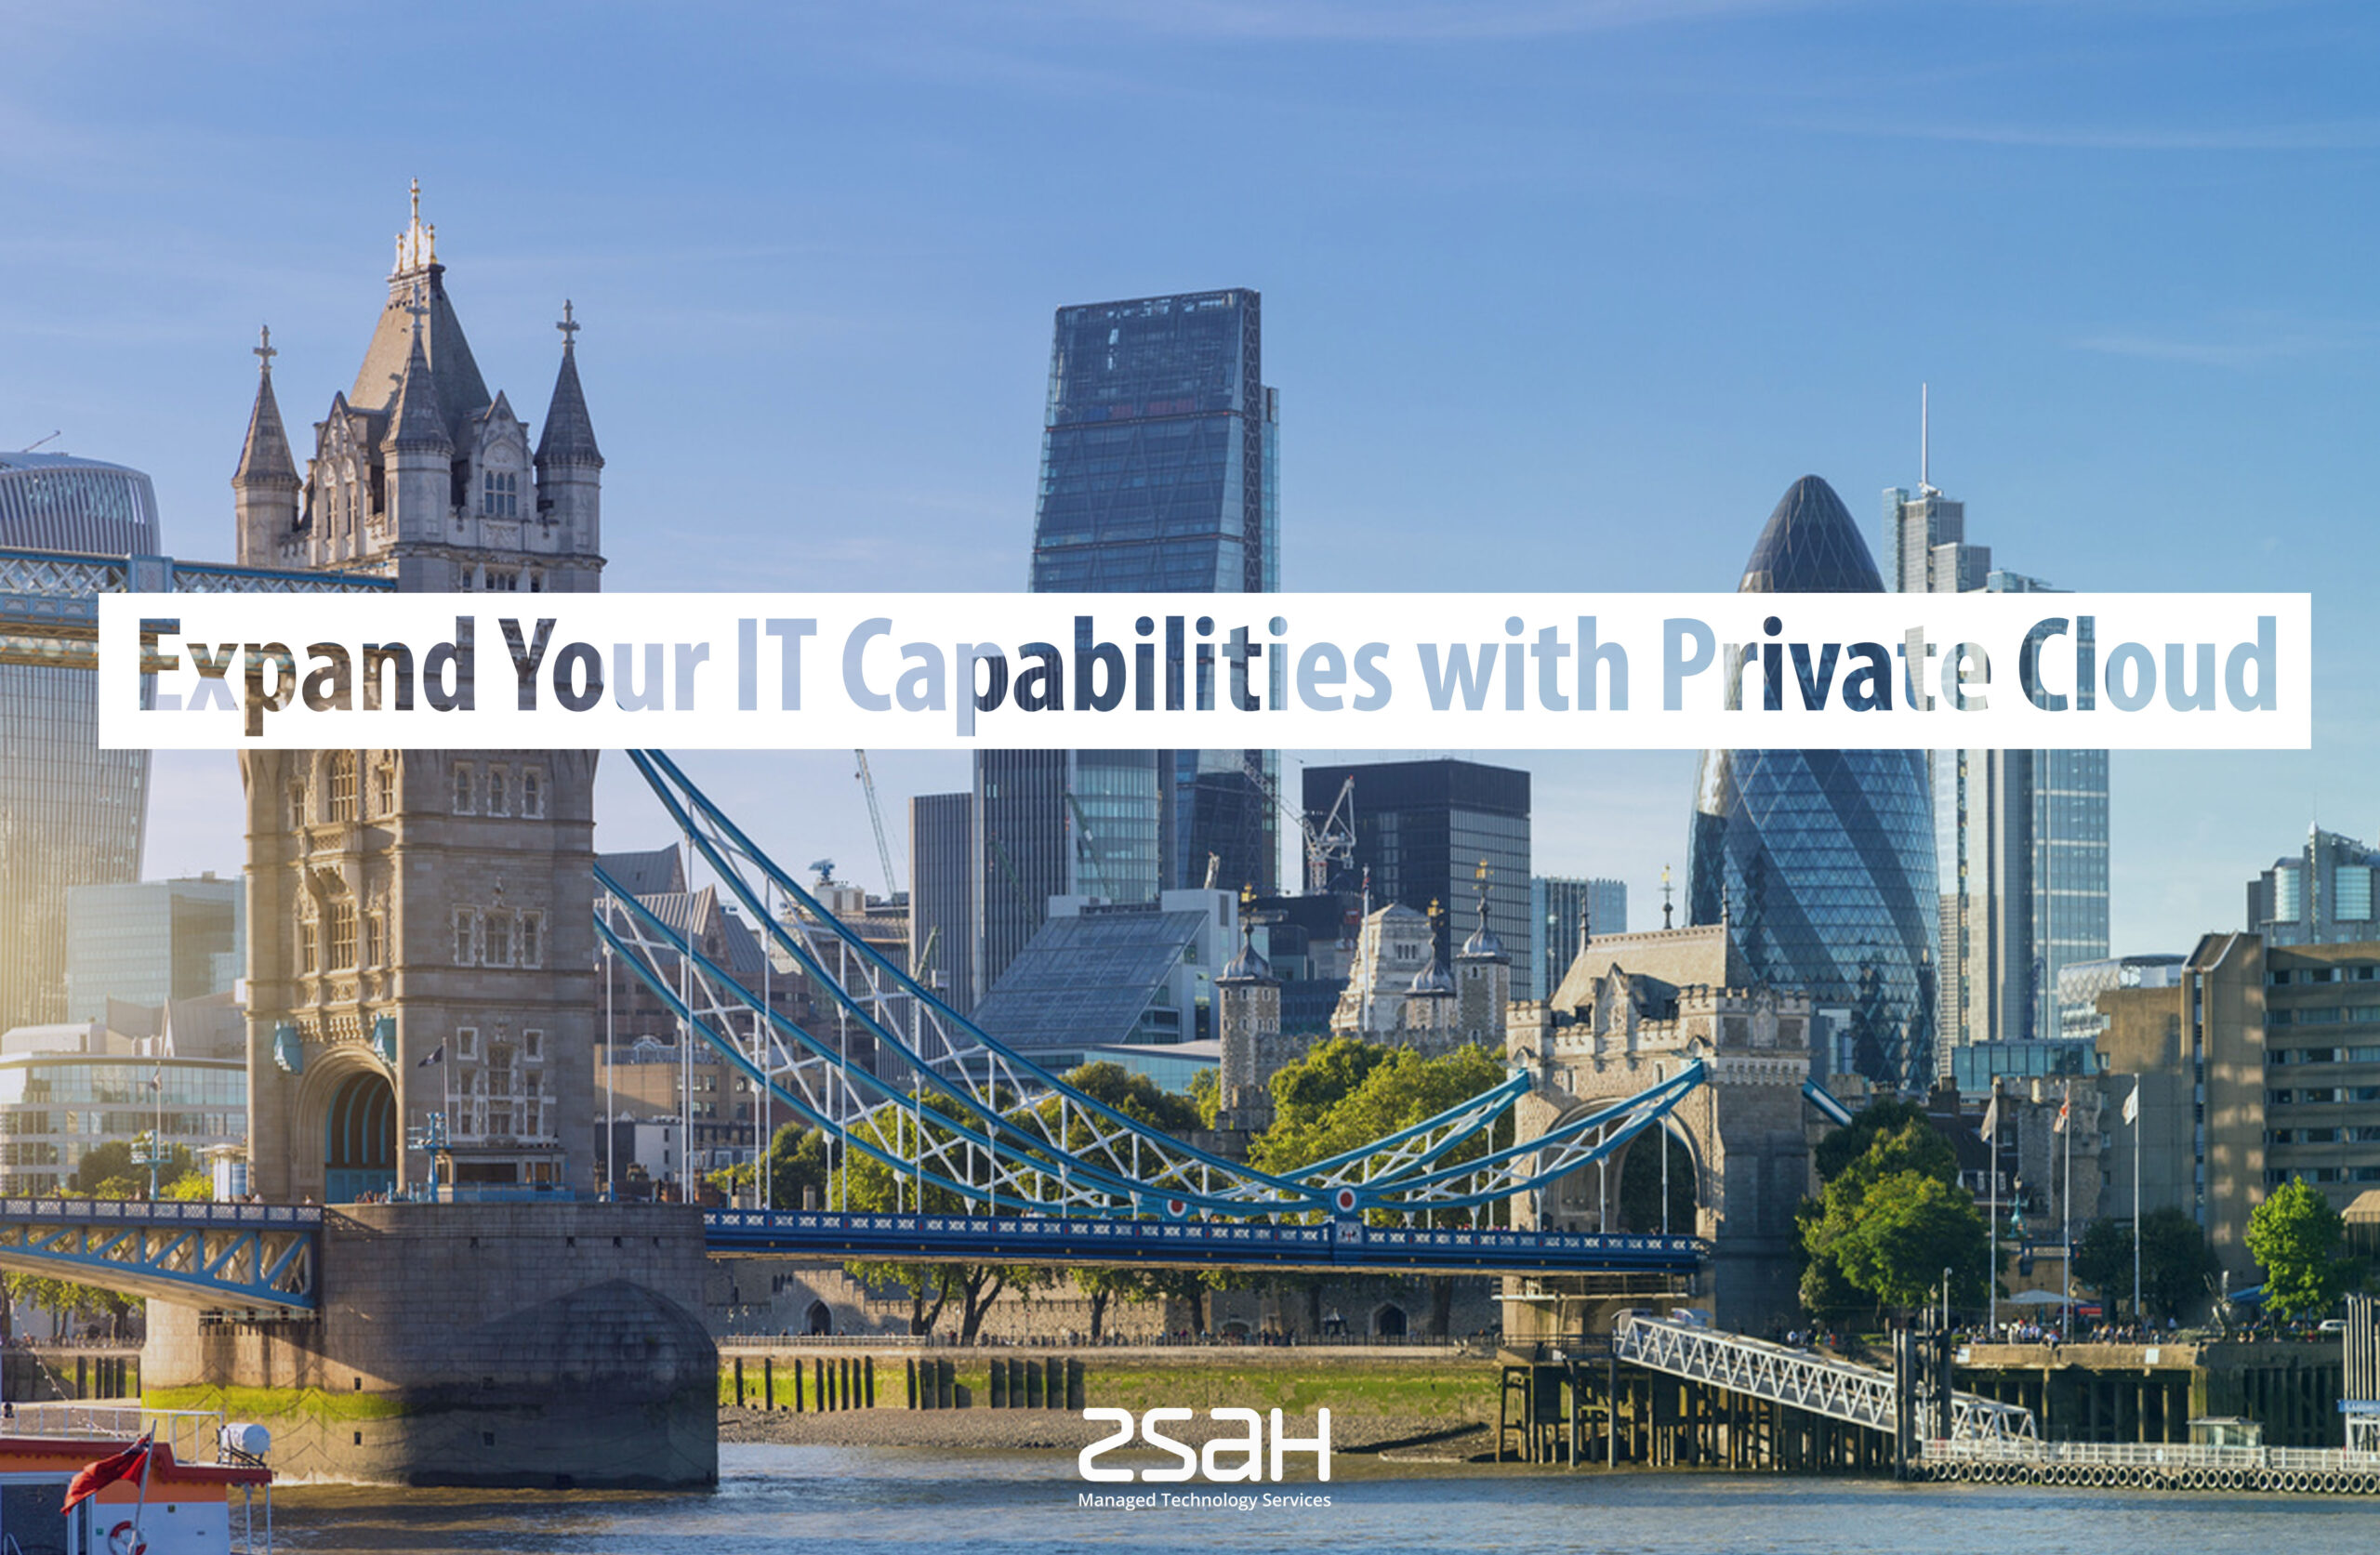 expand your it capabilities with private clouding - zsah